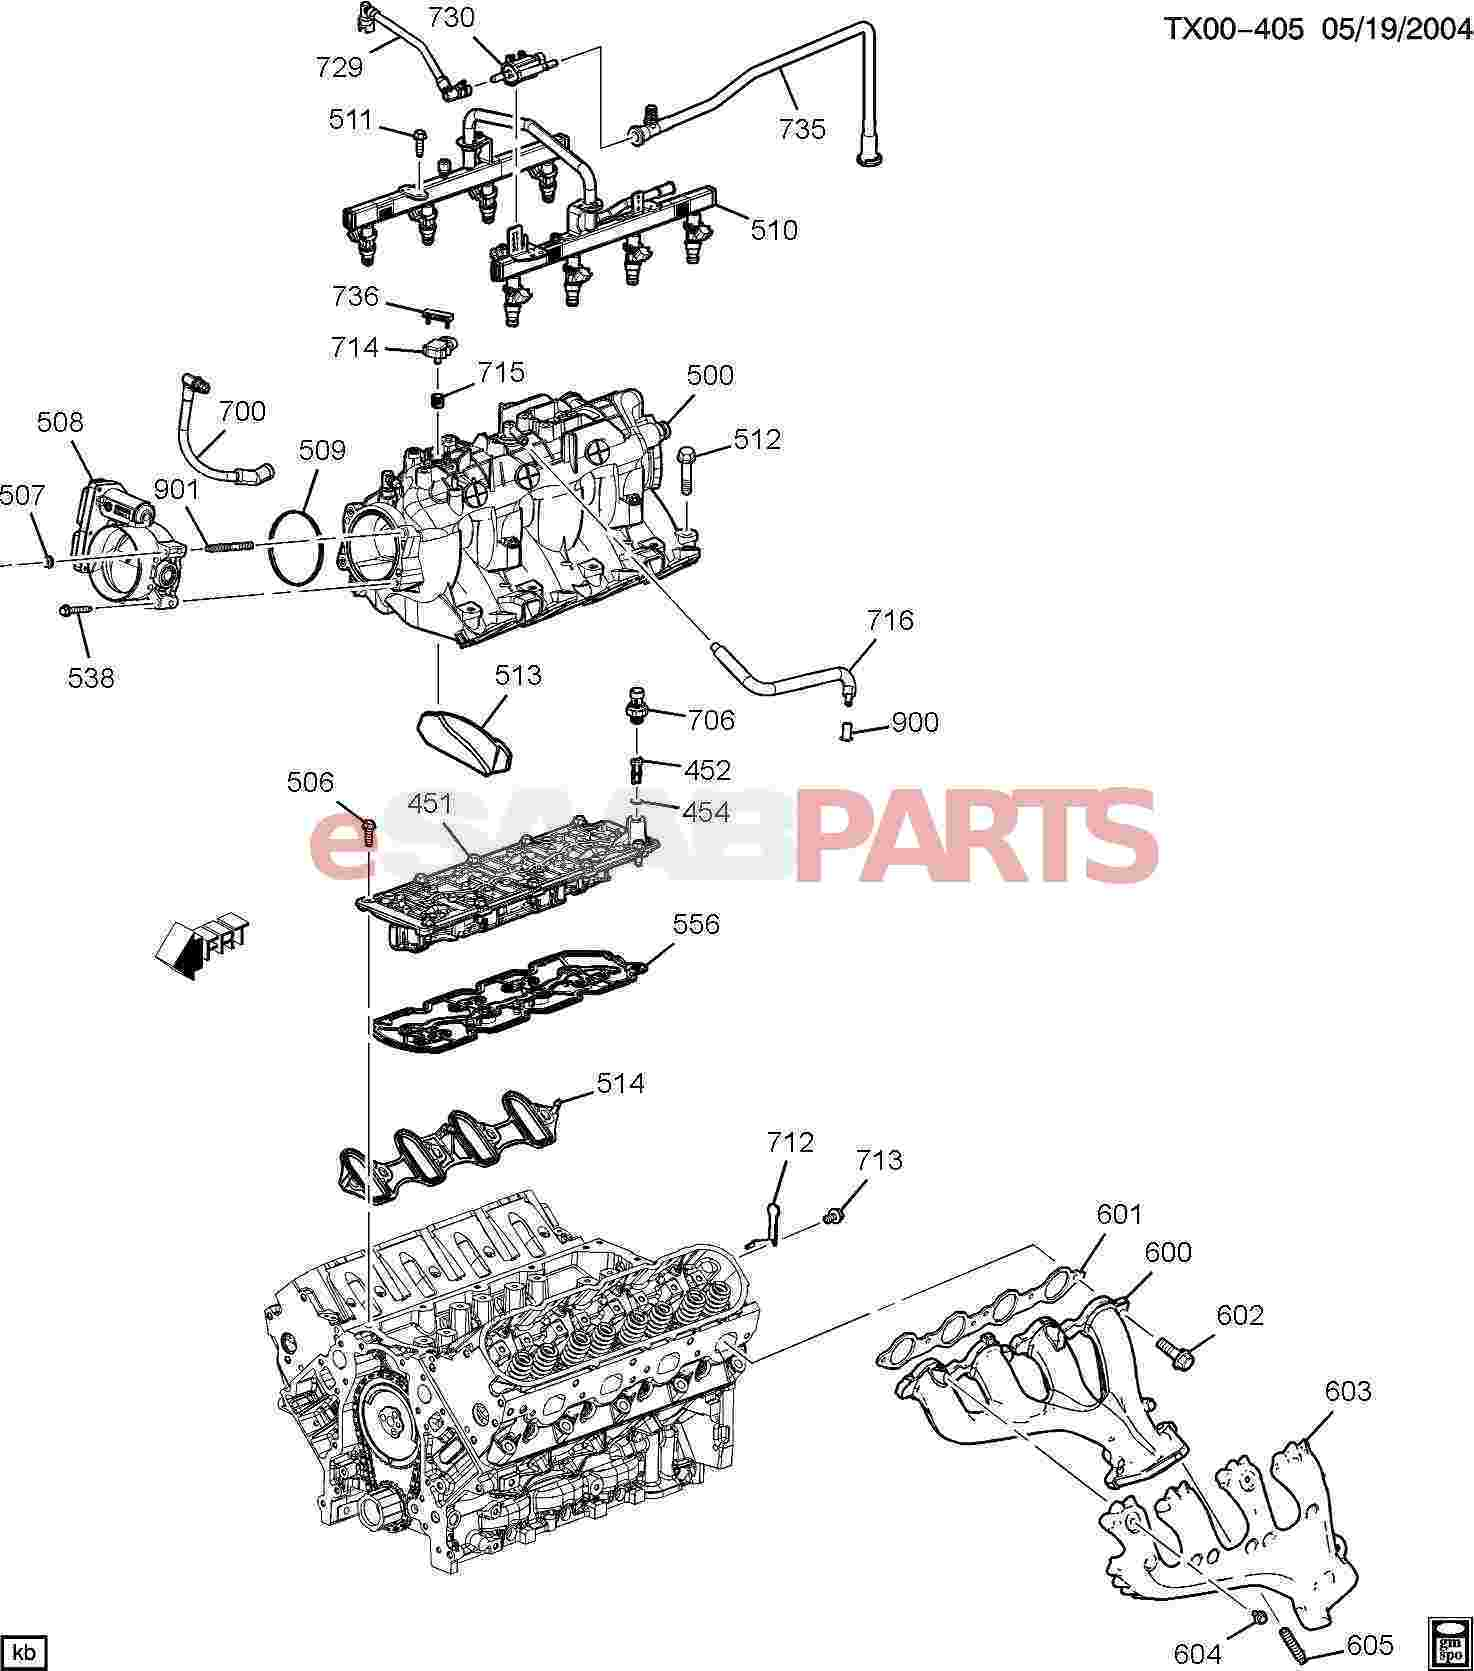 chevy 5 3 engine diagram 5 3 liter chevy engine diagram wiring diagram  5 3 liter chevy engine diagram wiring